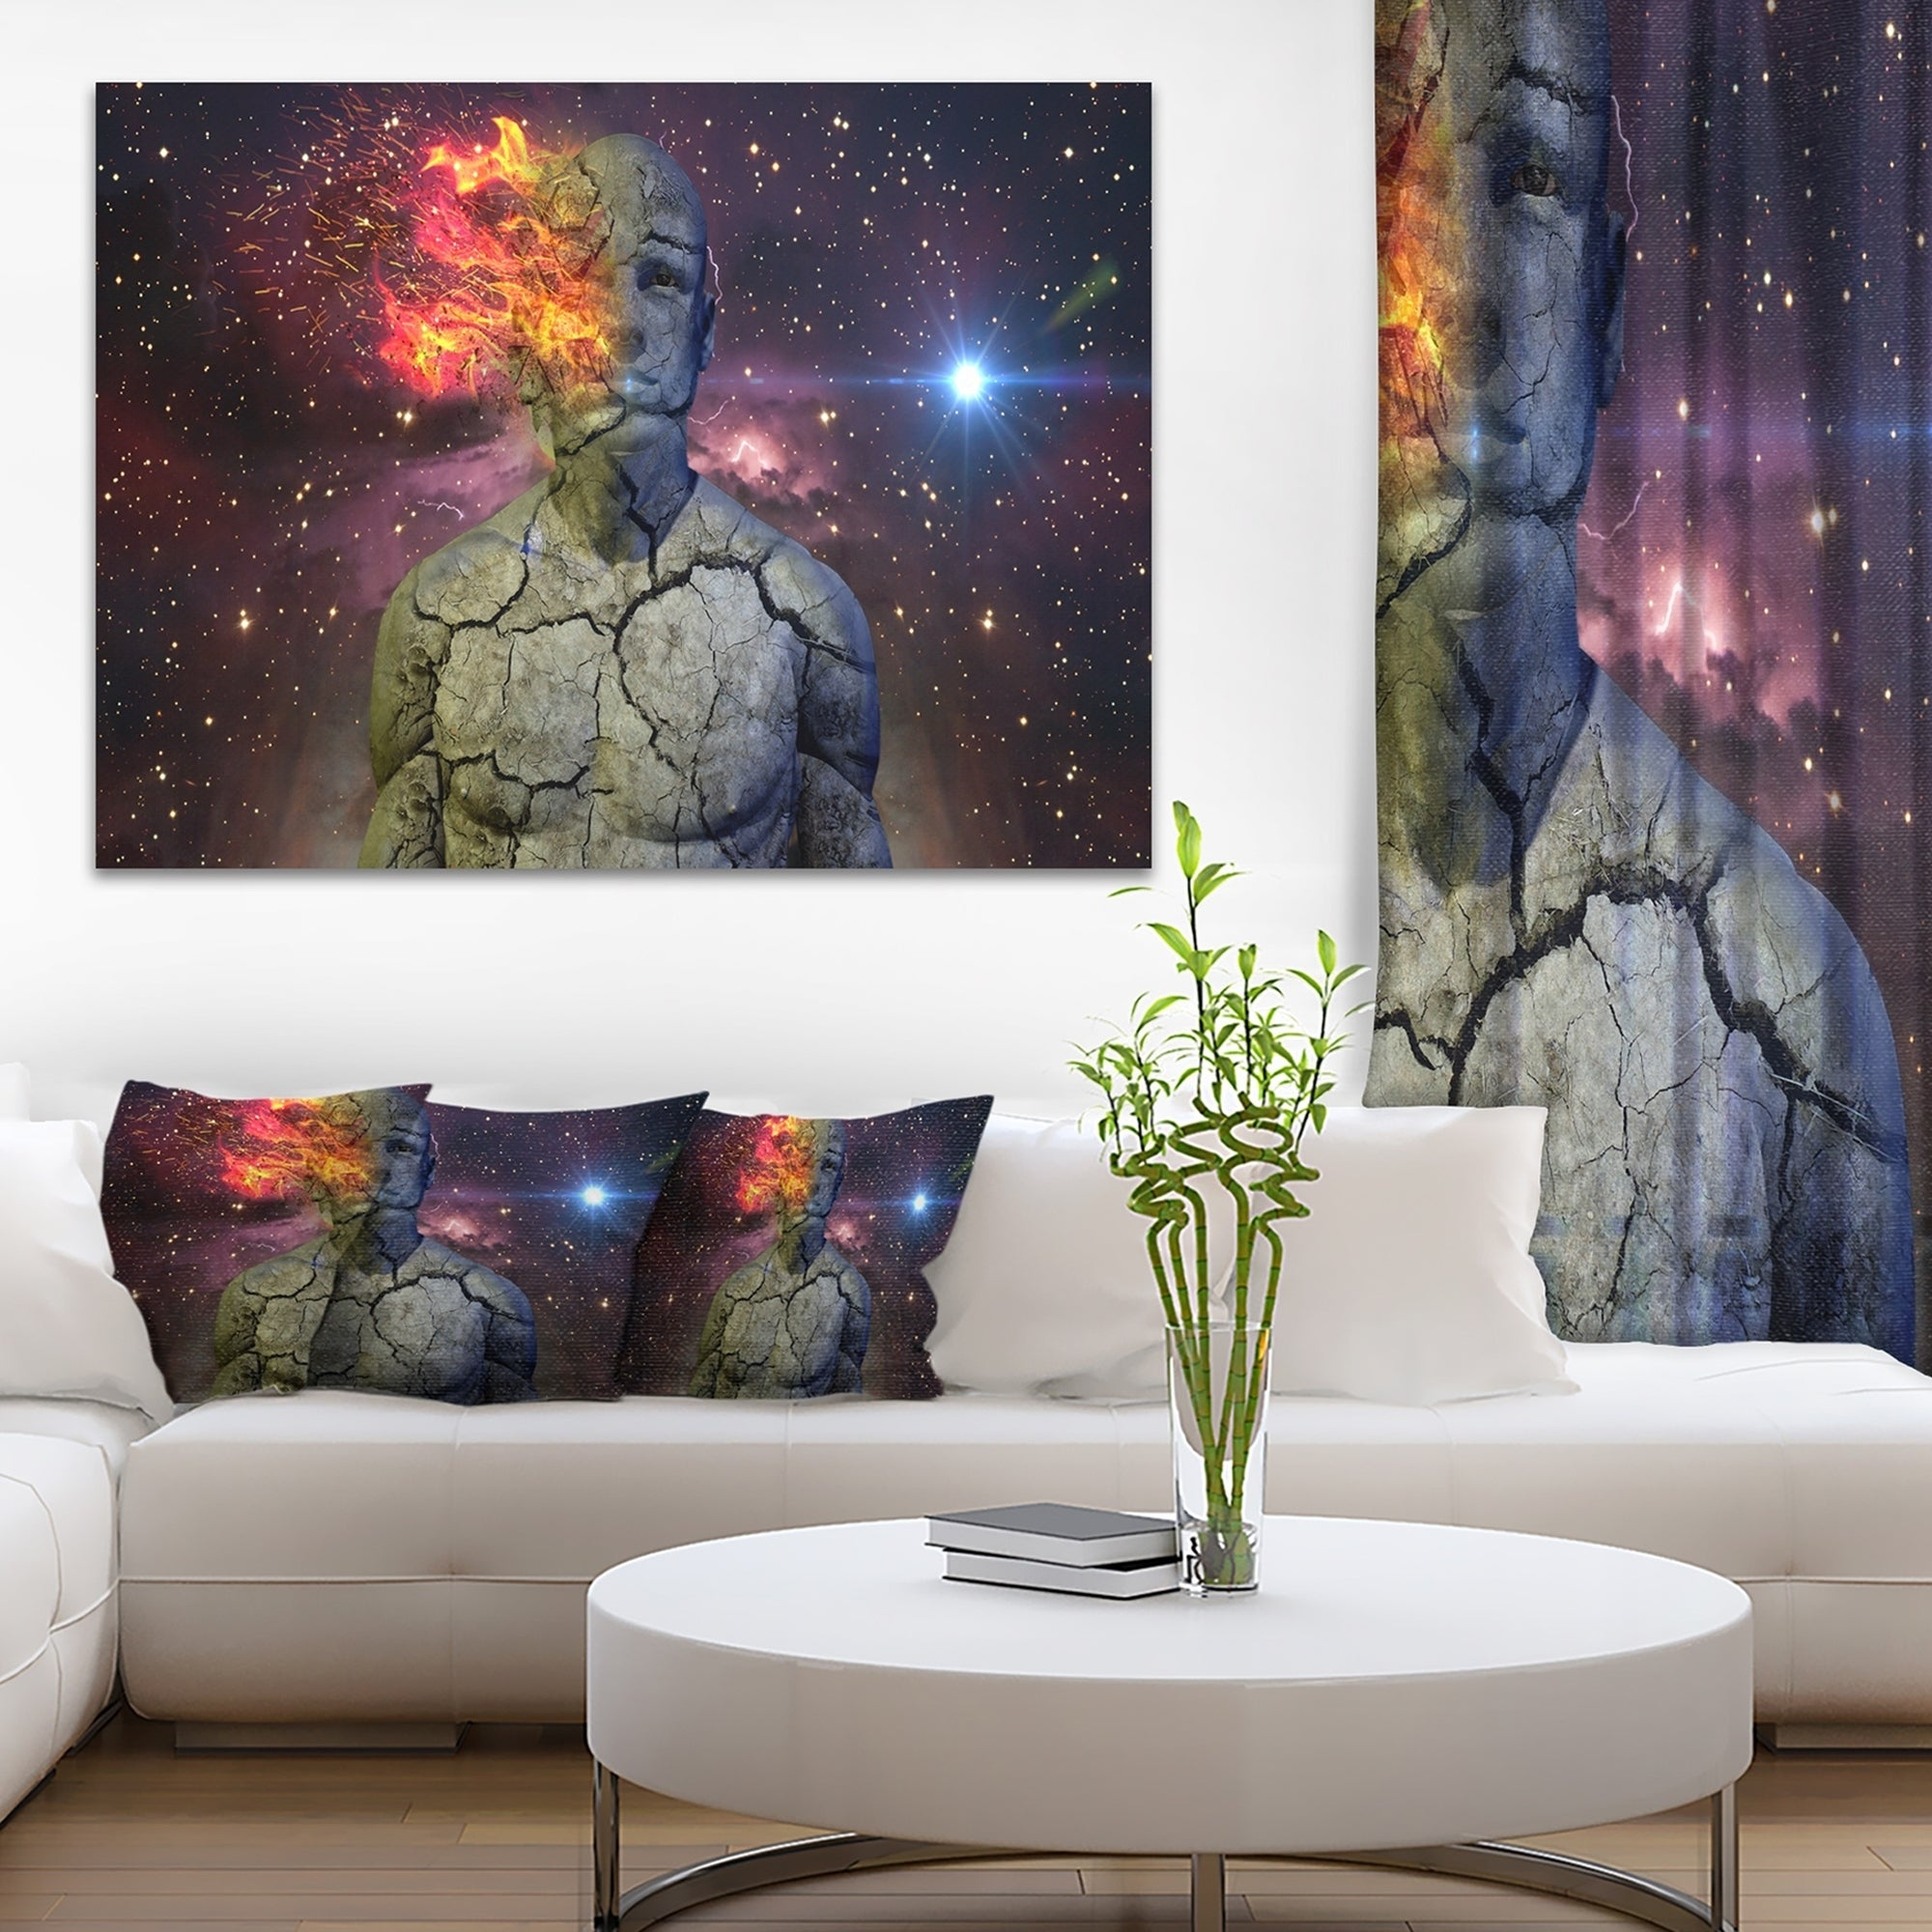 Broken Human Body With Fire Abstract Art Canvas Print Overstock 12117467